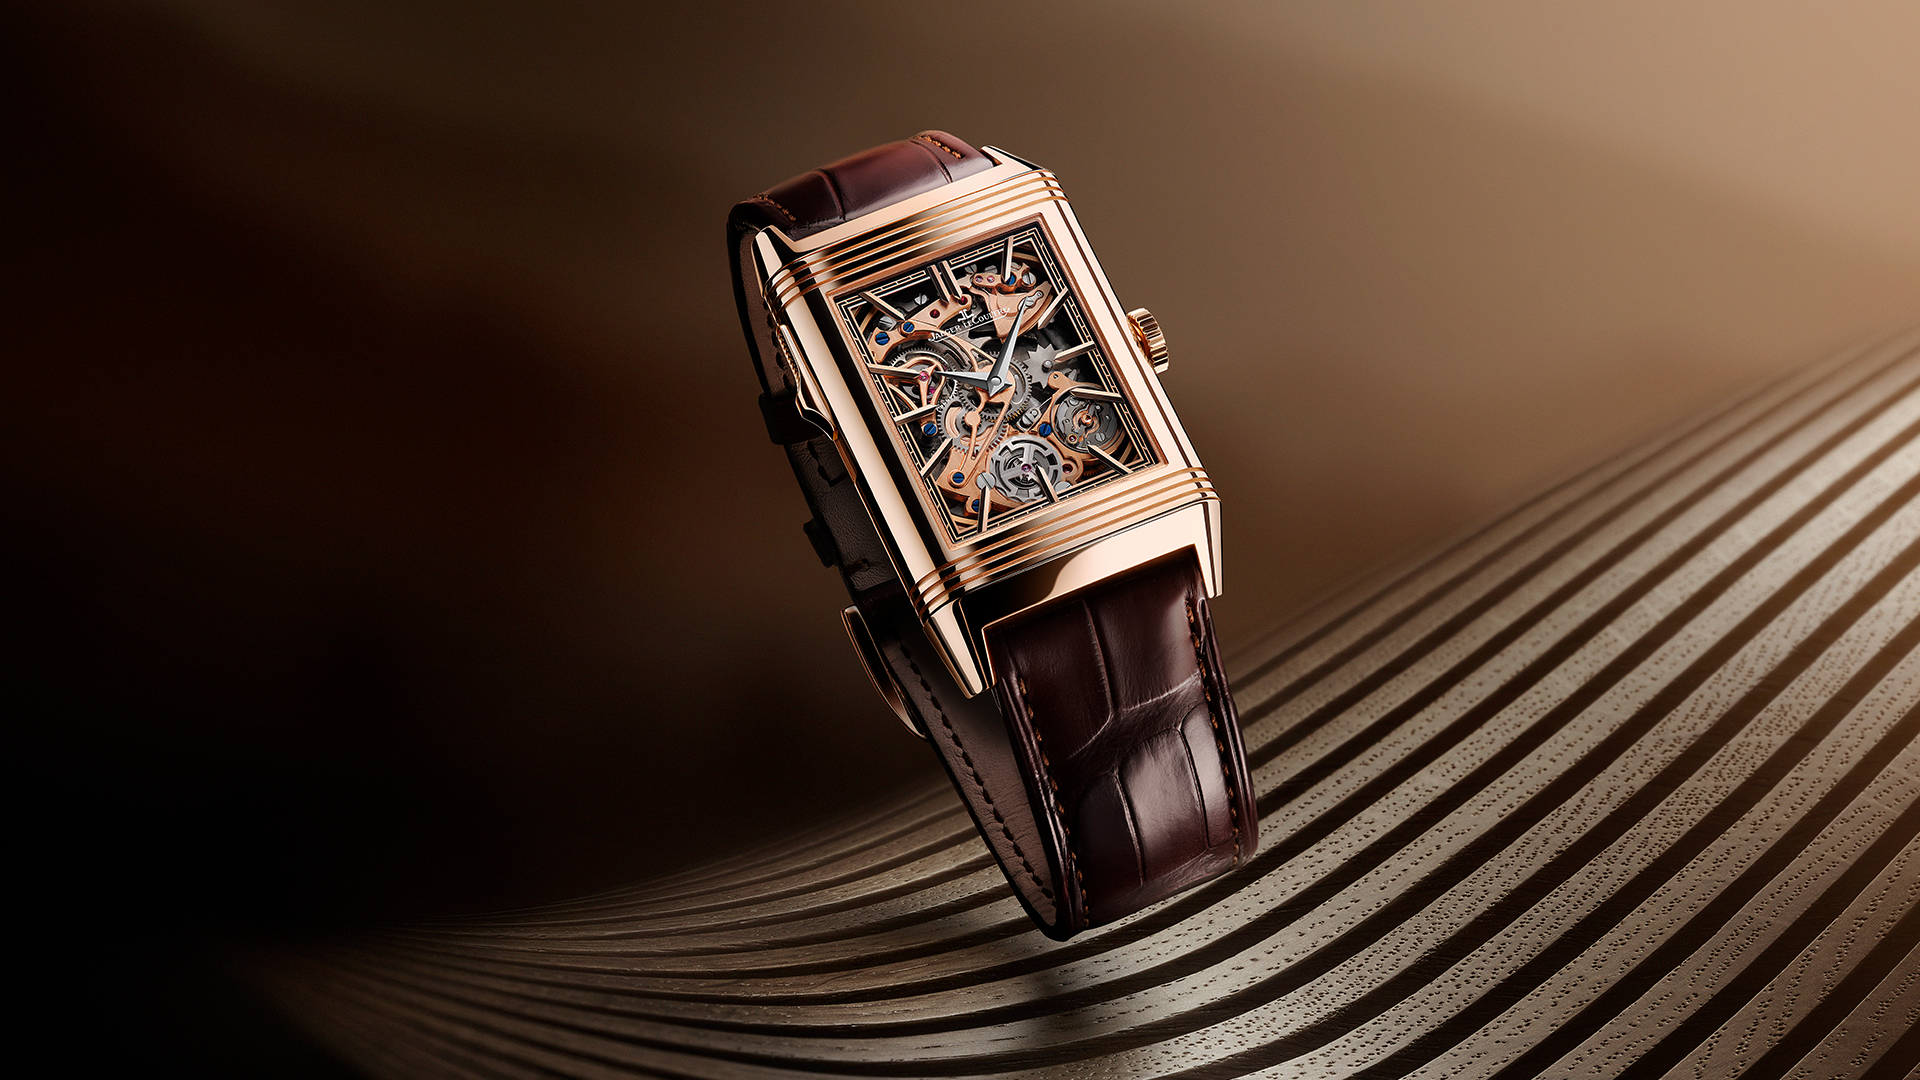 Jaeger-LeCoultre Reverso Tribute Minute Repeater Lifestyle frontal